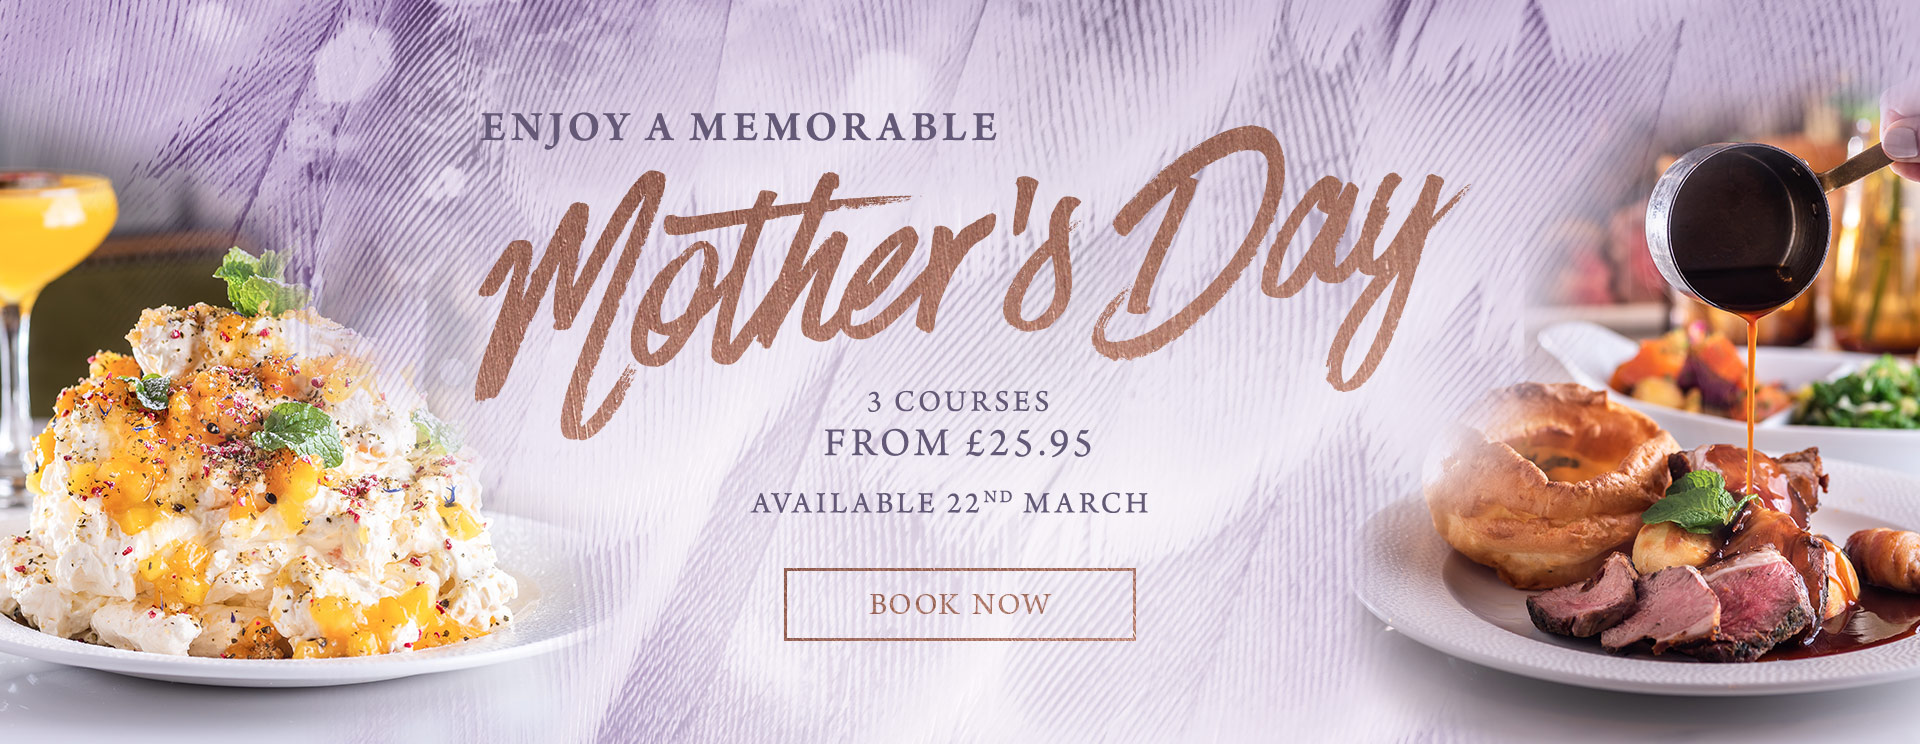 Mother's Day 2019 at The Trout Inn